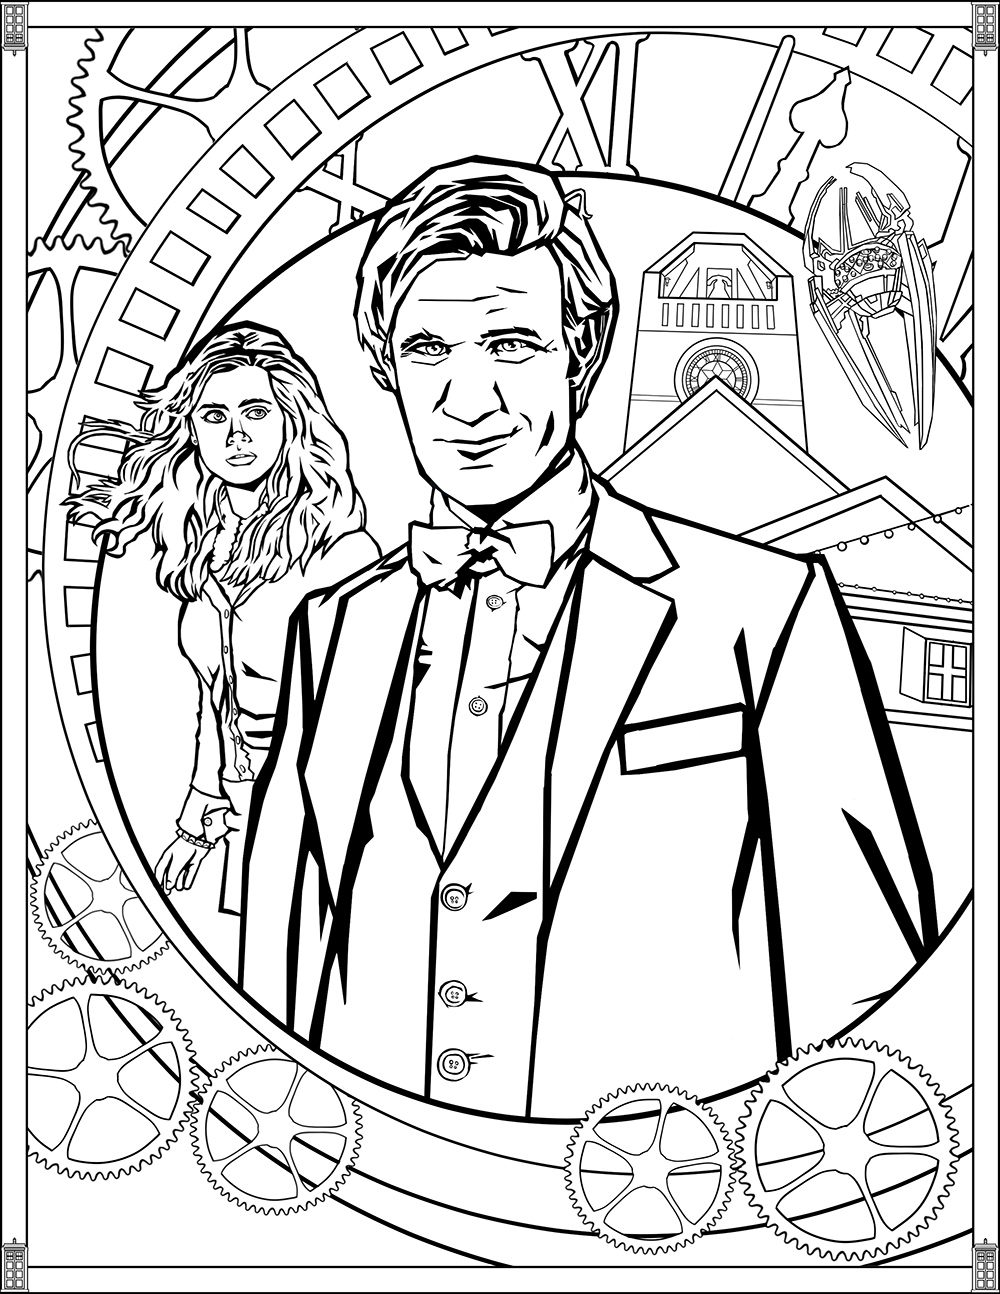 doctor who pictures to colour doctor who wibbly wobbly timey wimey coloring pages to pictures who colour doctor